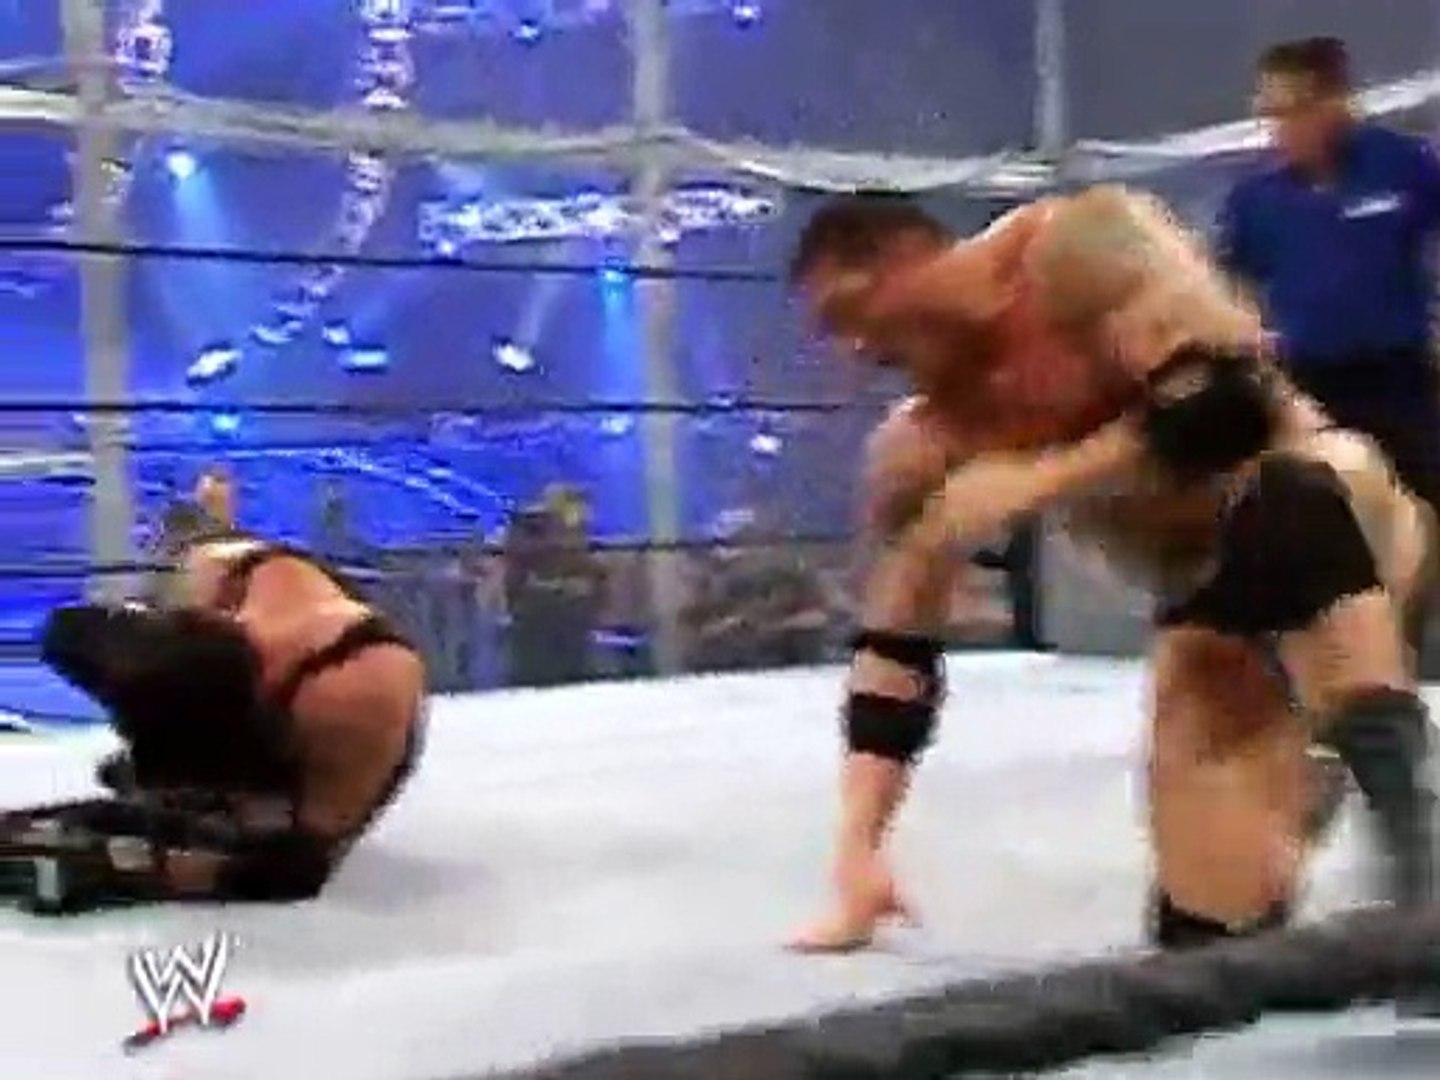 SURVIVOR SERIES 2007 HELL IN A CELL MATCH VF